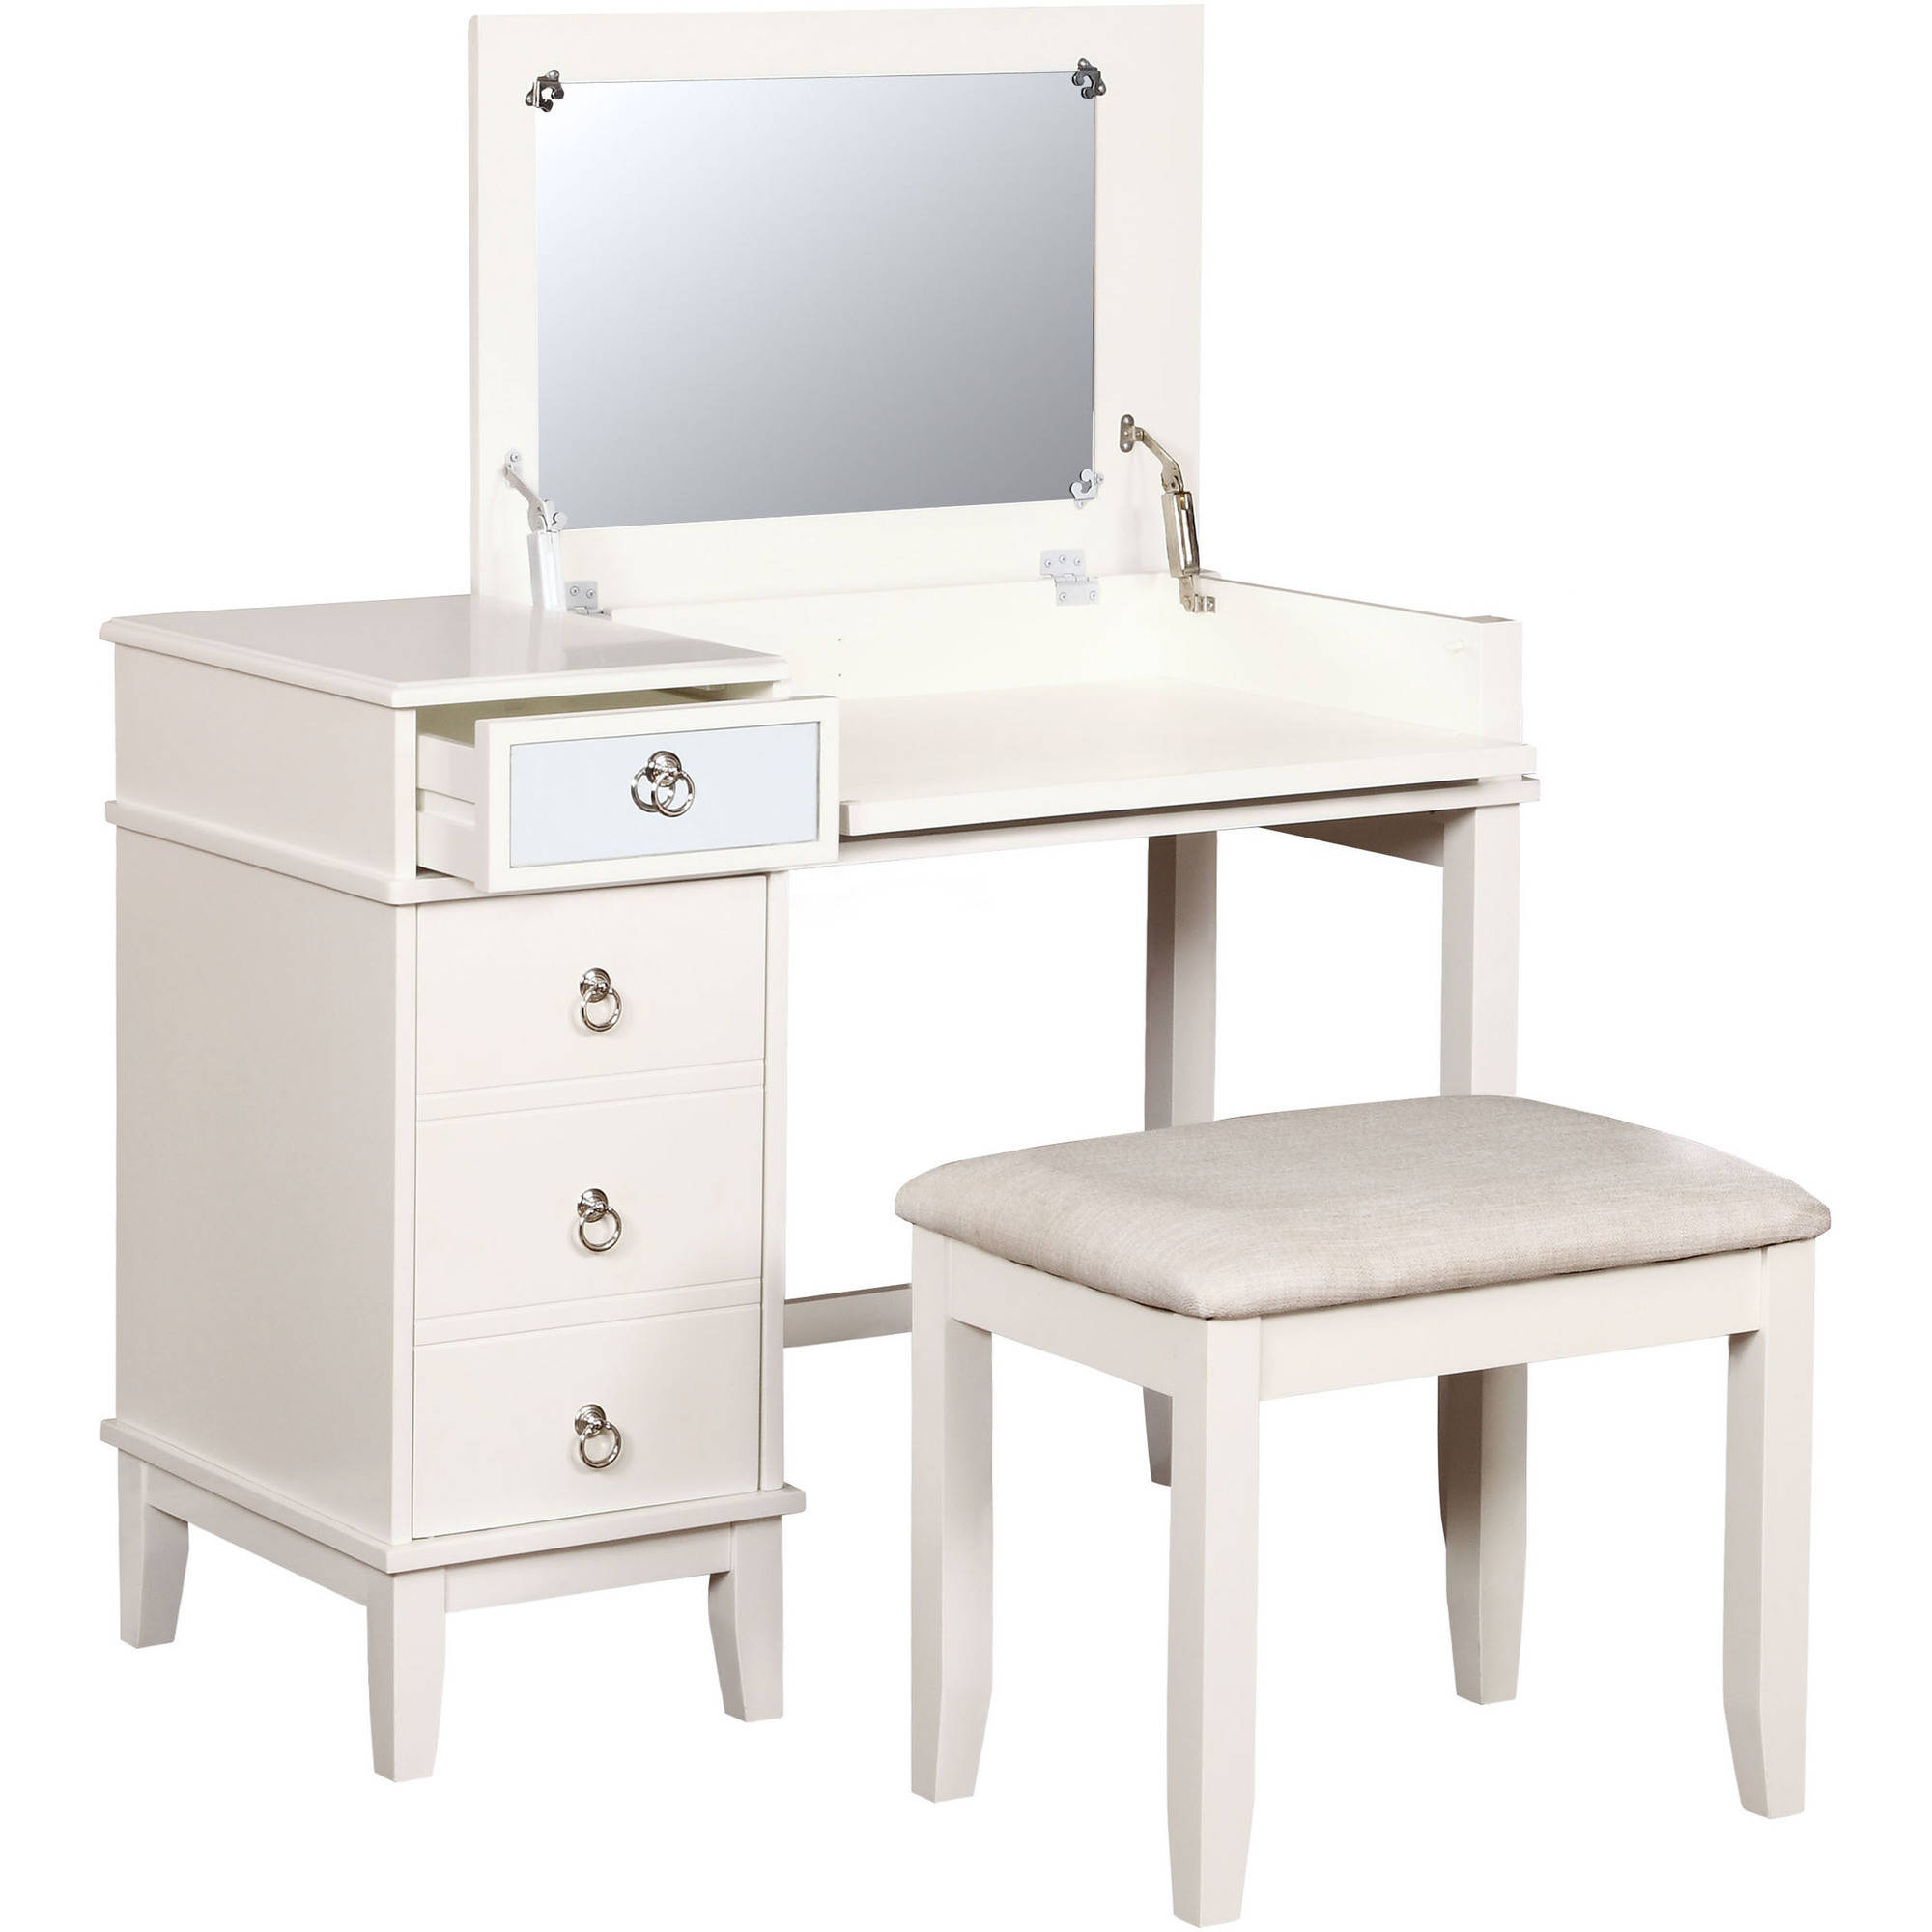 Bedroom Vanities Walmart